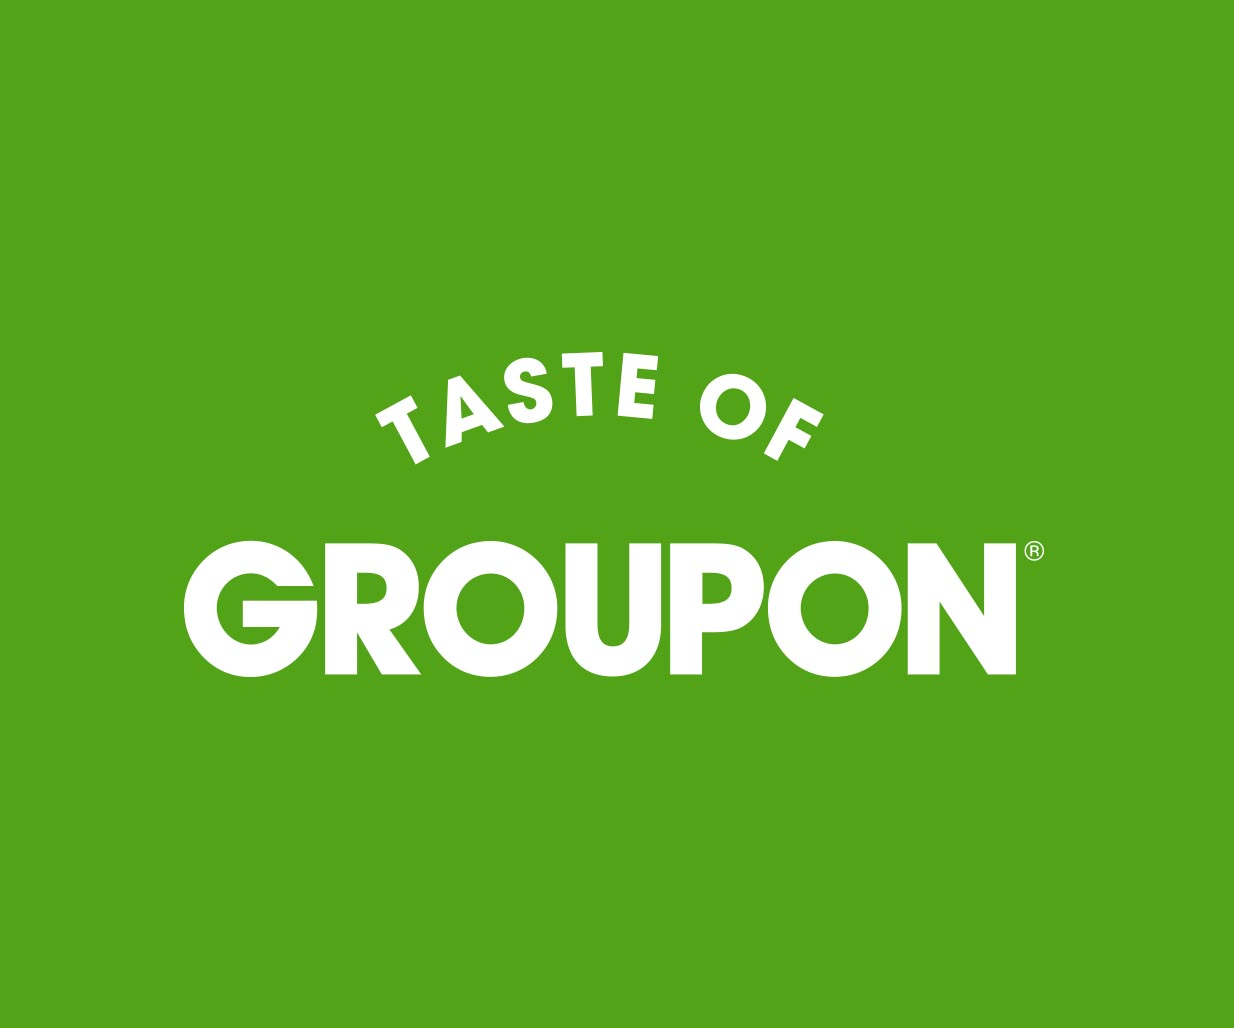 Digital Campaign, Creative Copywriting, Web Banners & Ad Design project in Sydney Australia for global online business brand Groupon, image A